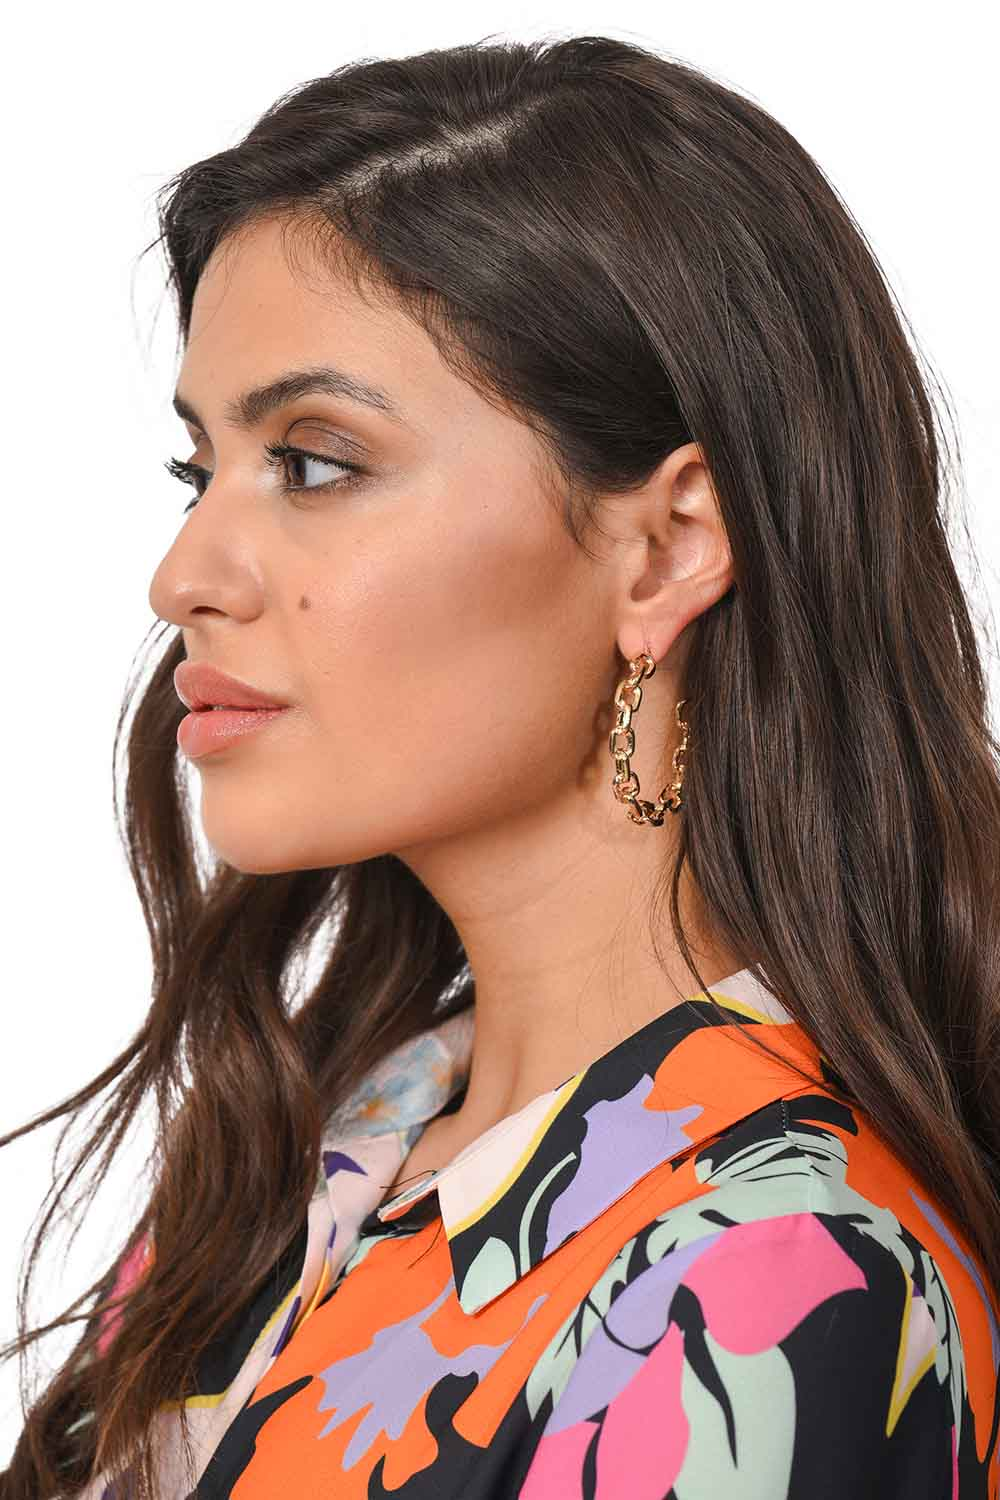 MIZALLE Chain Detailed Ring Earrings (Small) (St) (1)